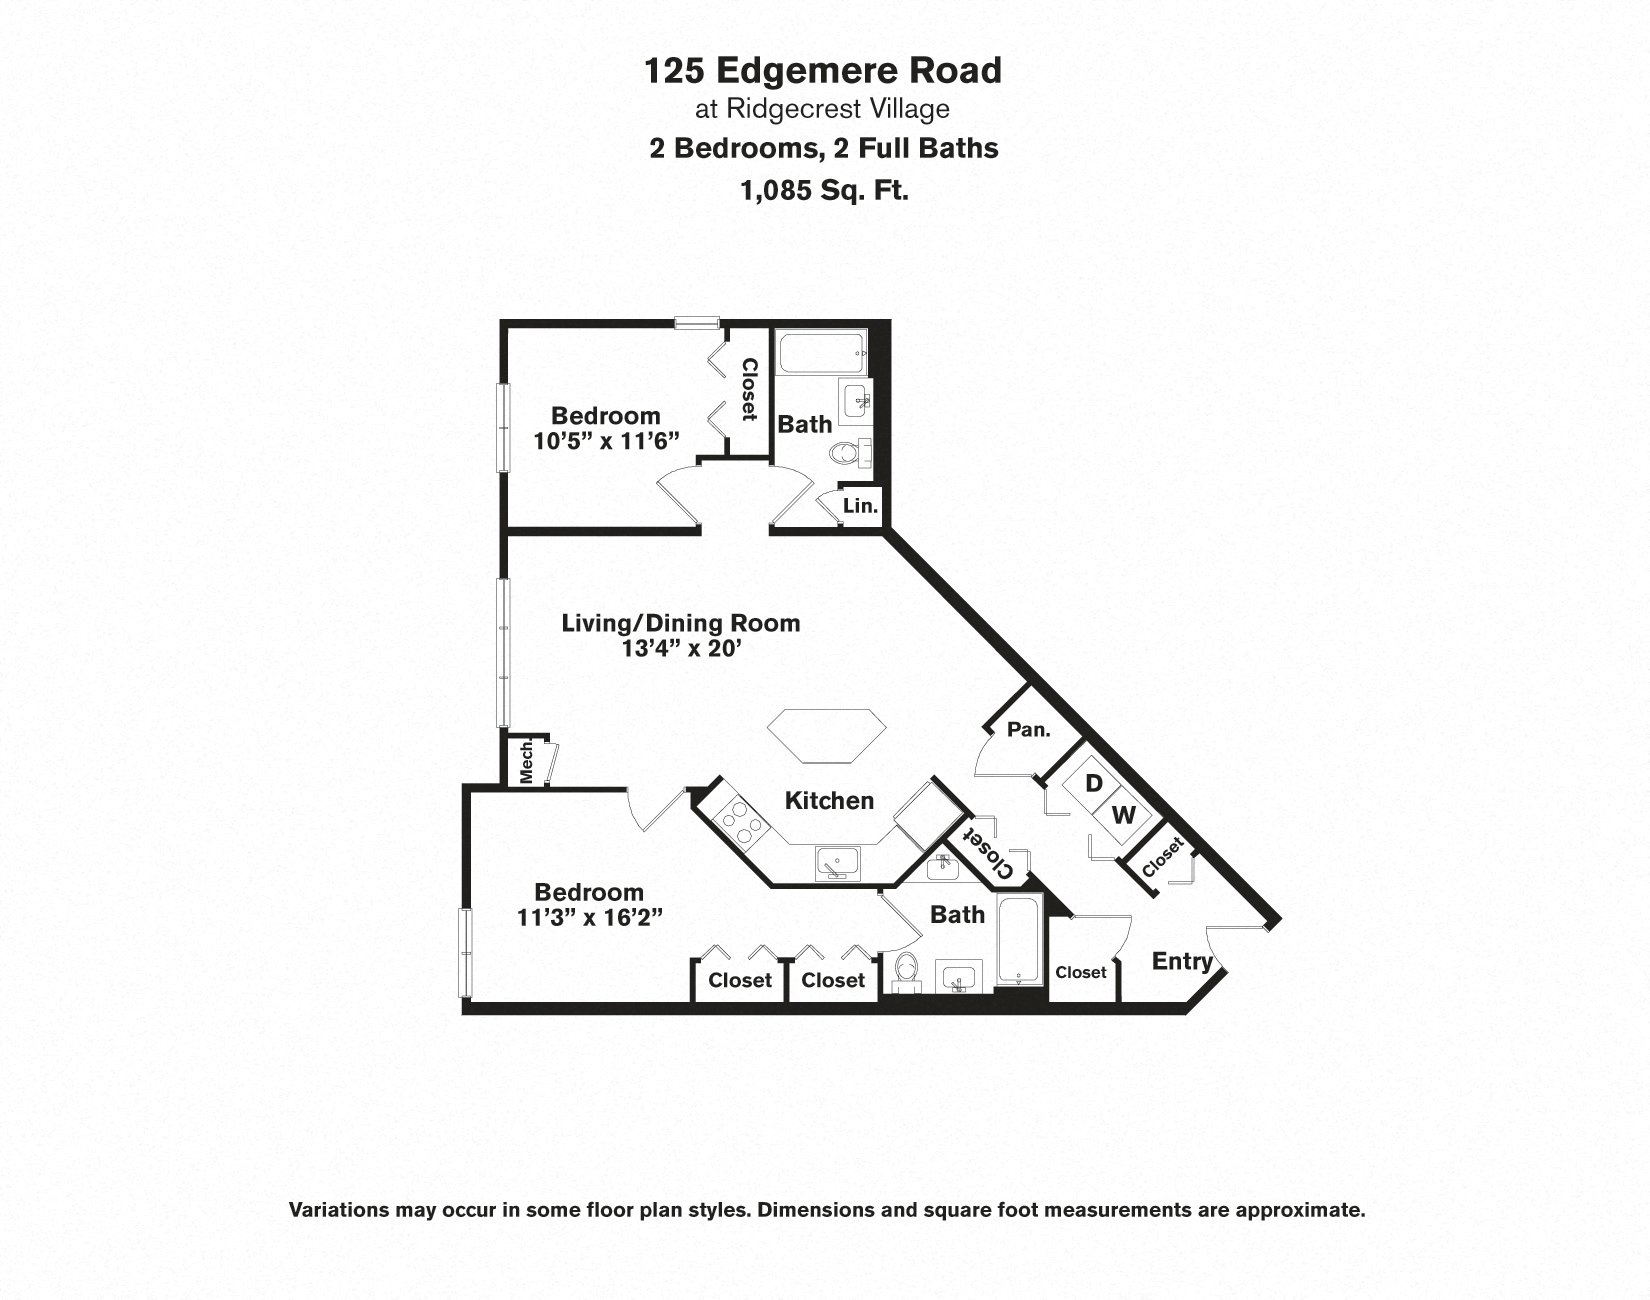 Click to view 2 BR - Edgemere floor plan gallery